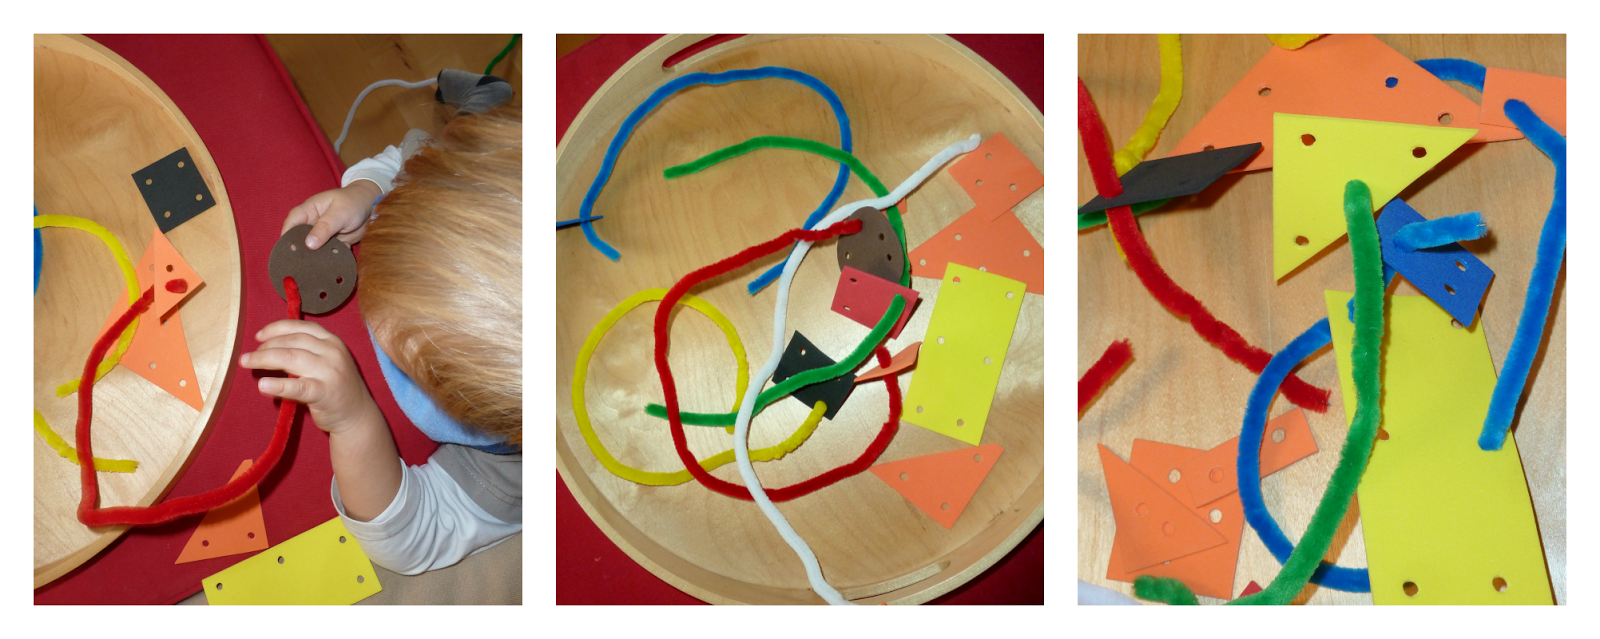 DIY a play set: craft foam threading with pipe cleaners. An early threading activity for toddlers.